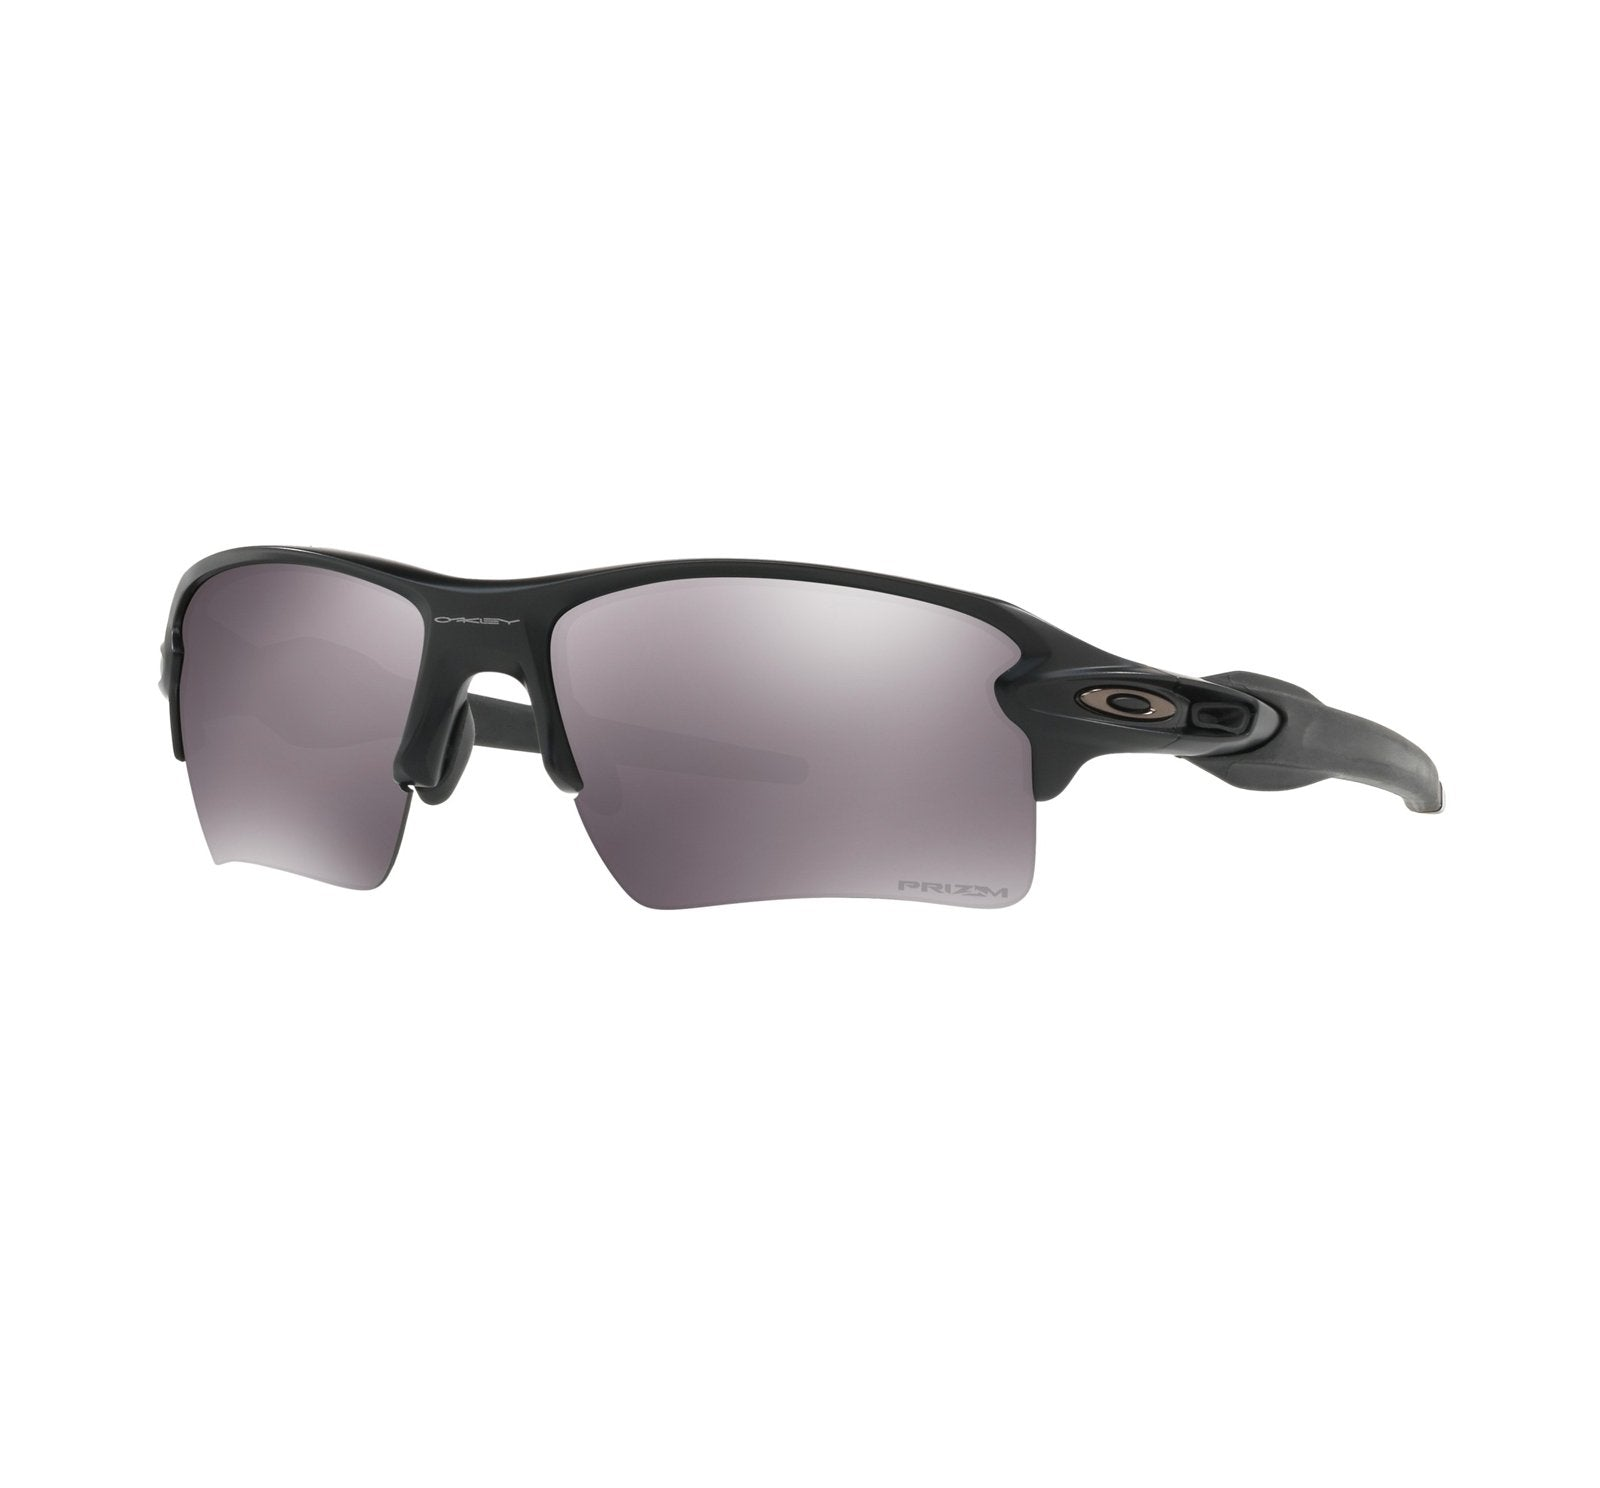 Oakley Flak 2.0 XL Men's Sunglasses - Matte Black/Prizm Black Iridium